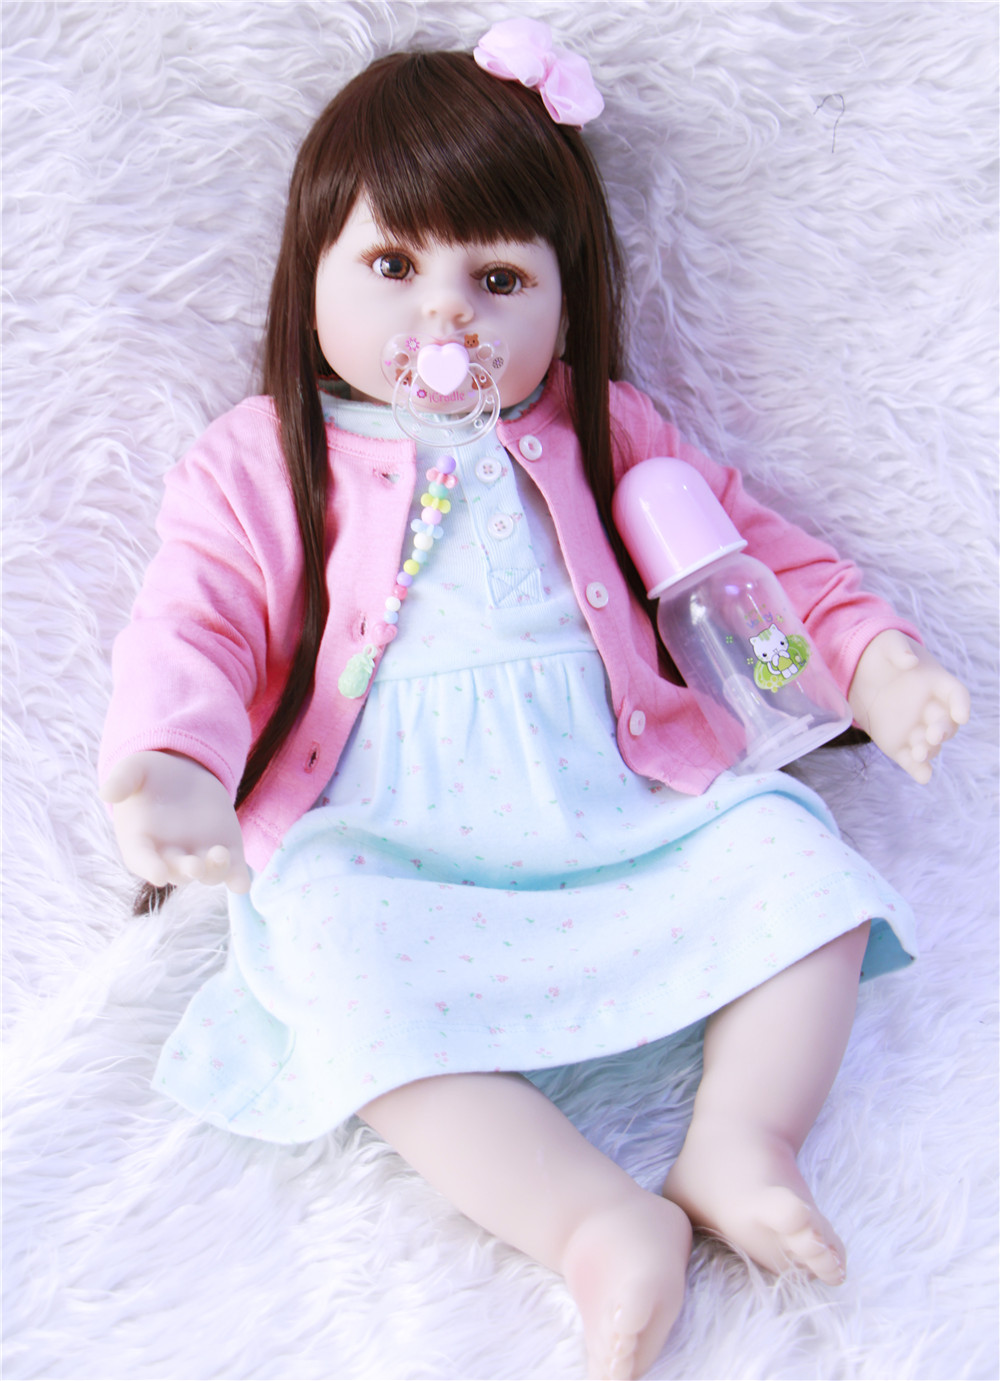 New Born Silicone Reborn Babies Doll + Soft Toys magnetic pacifier Handmade Girl Doll Looking Real Baby Lifelike Bebe Dolls Men